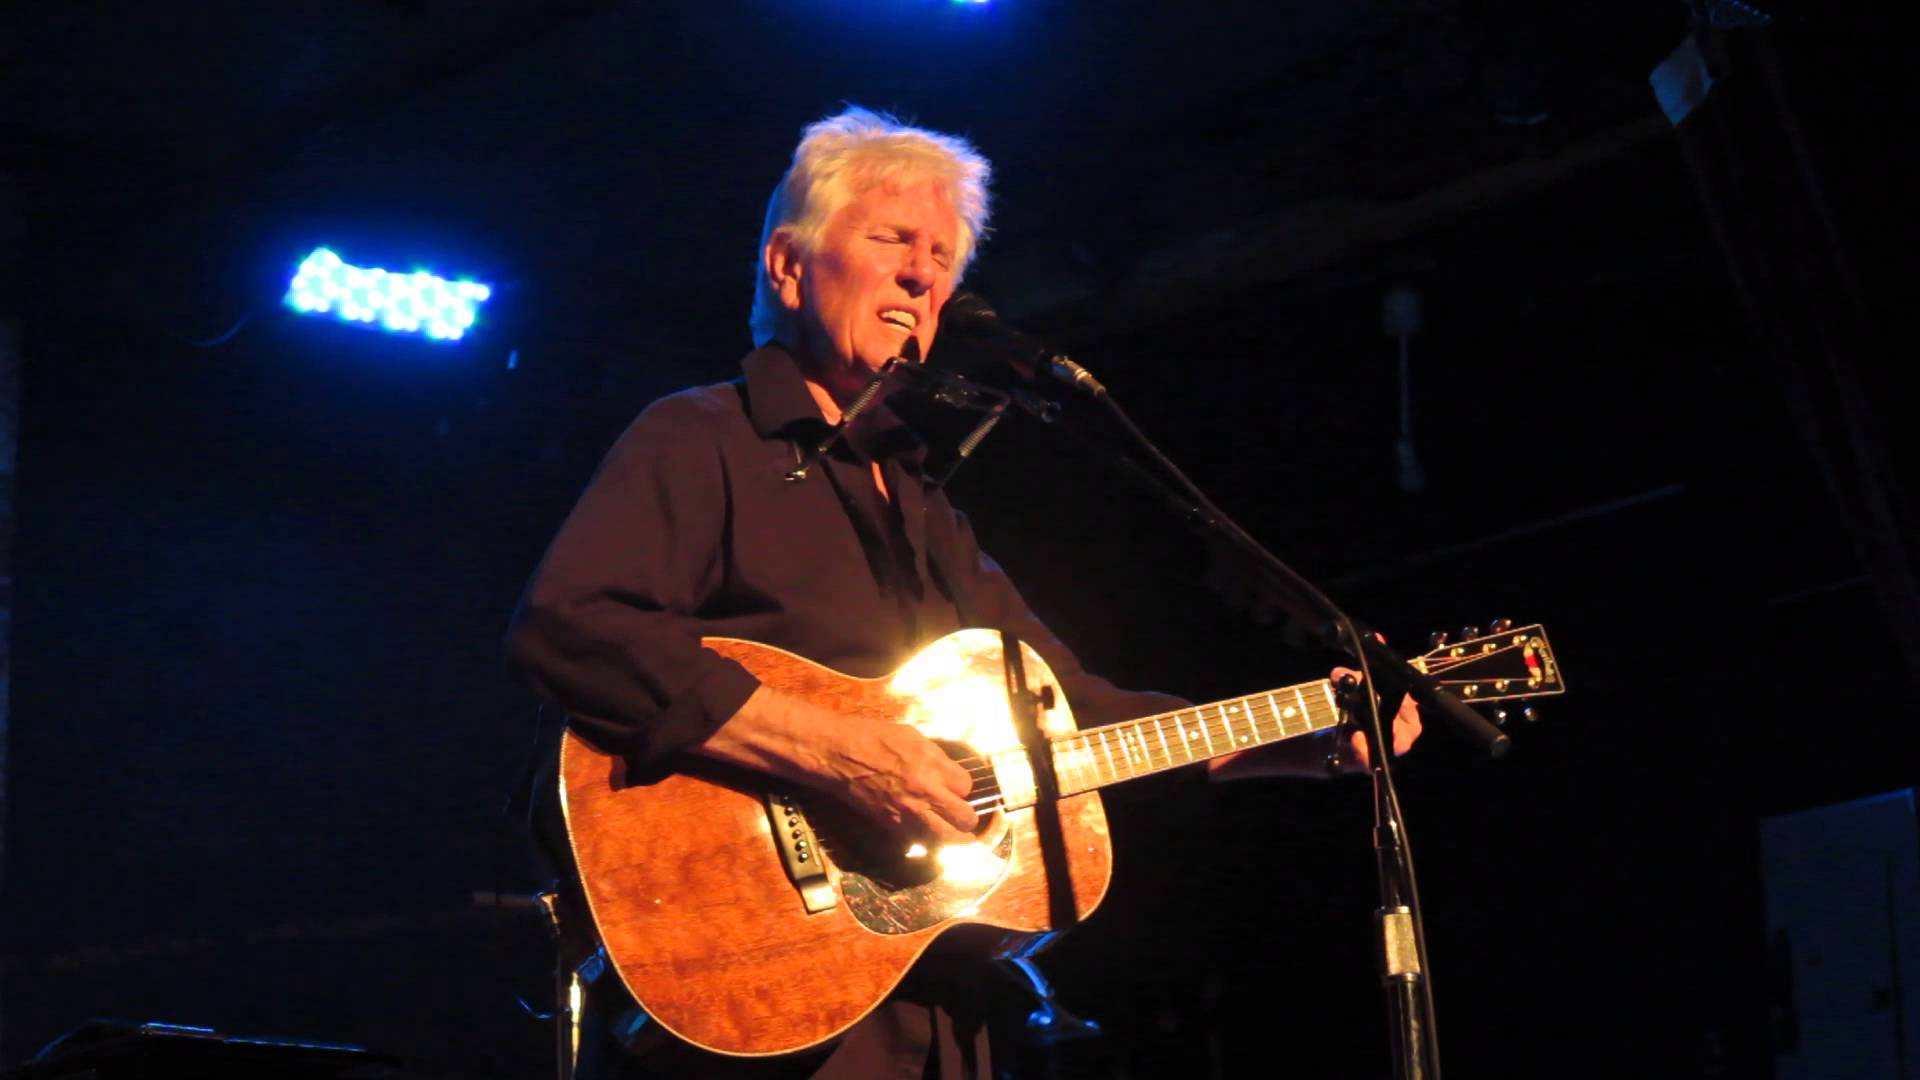 Top 10 best Graham Nash songs